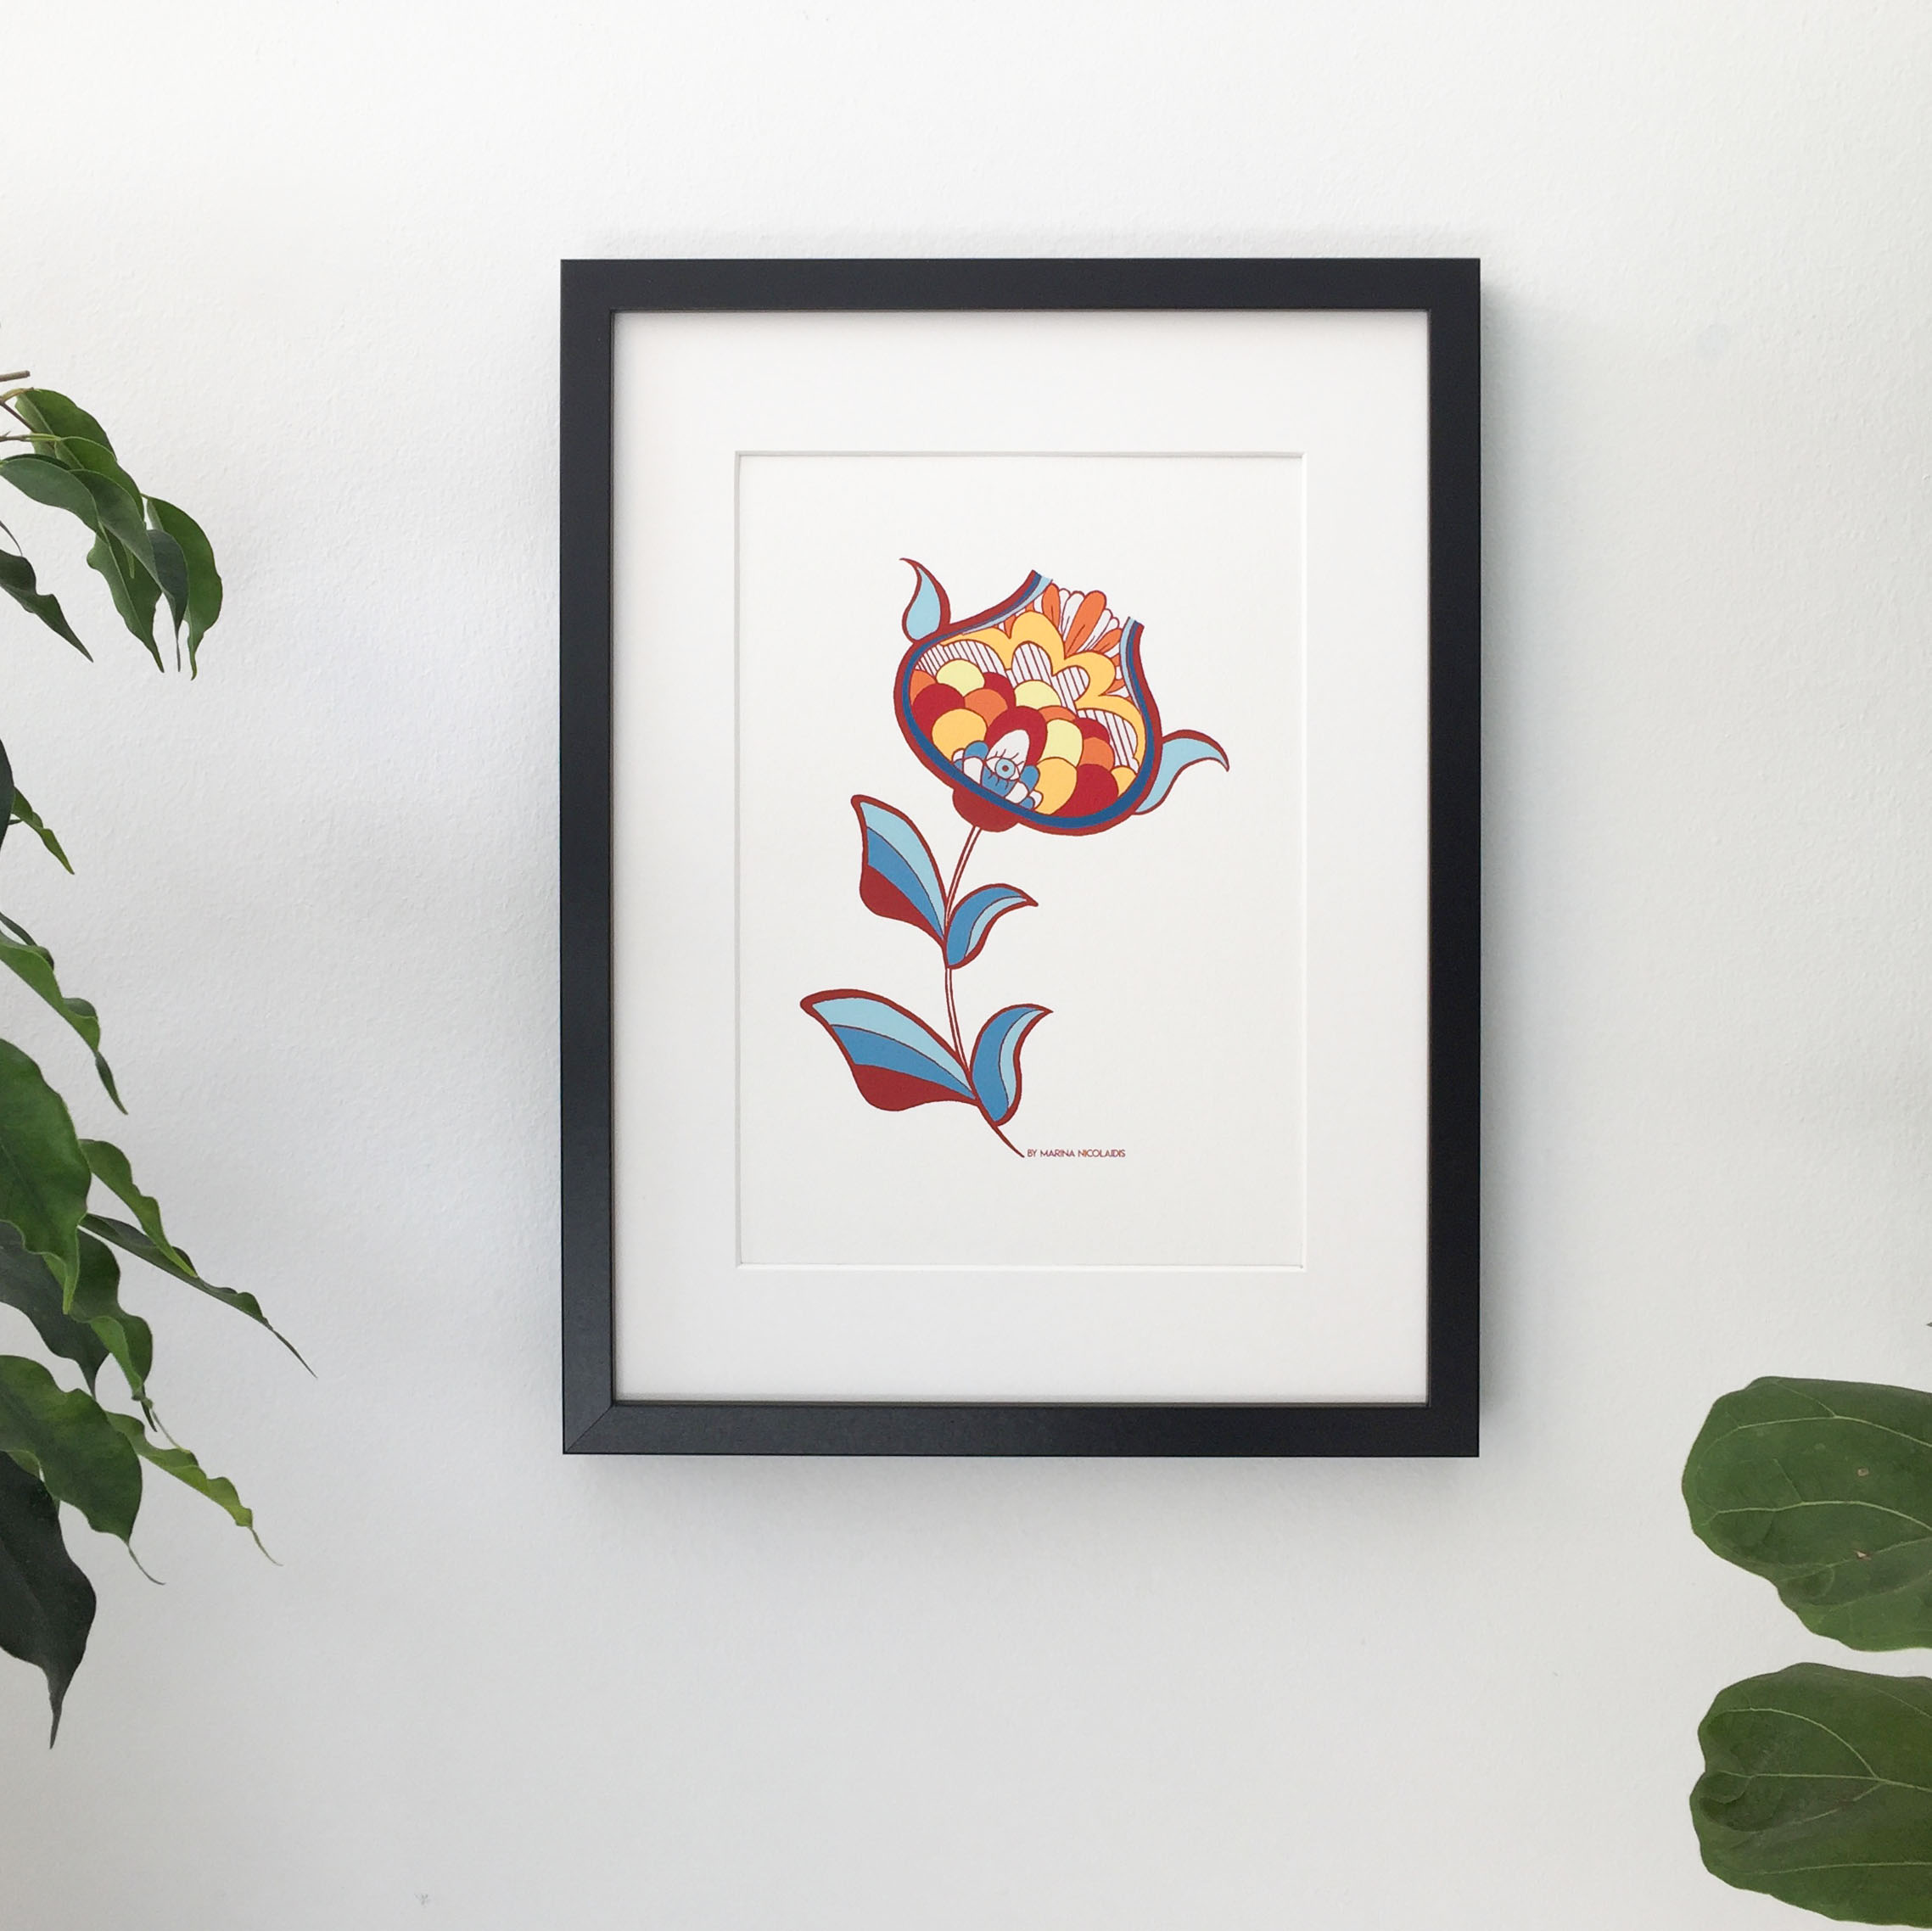 Art Print made of no charmful chemicals